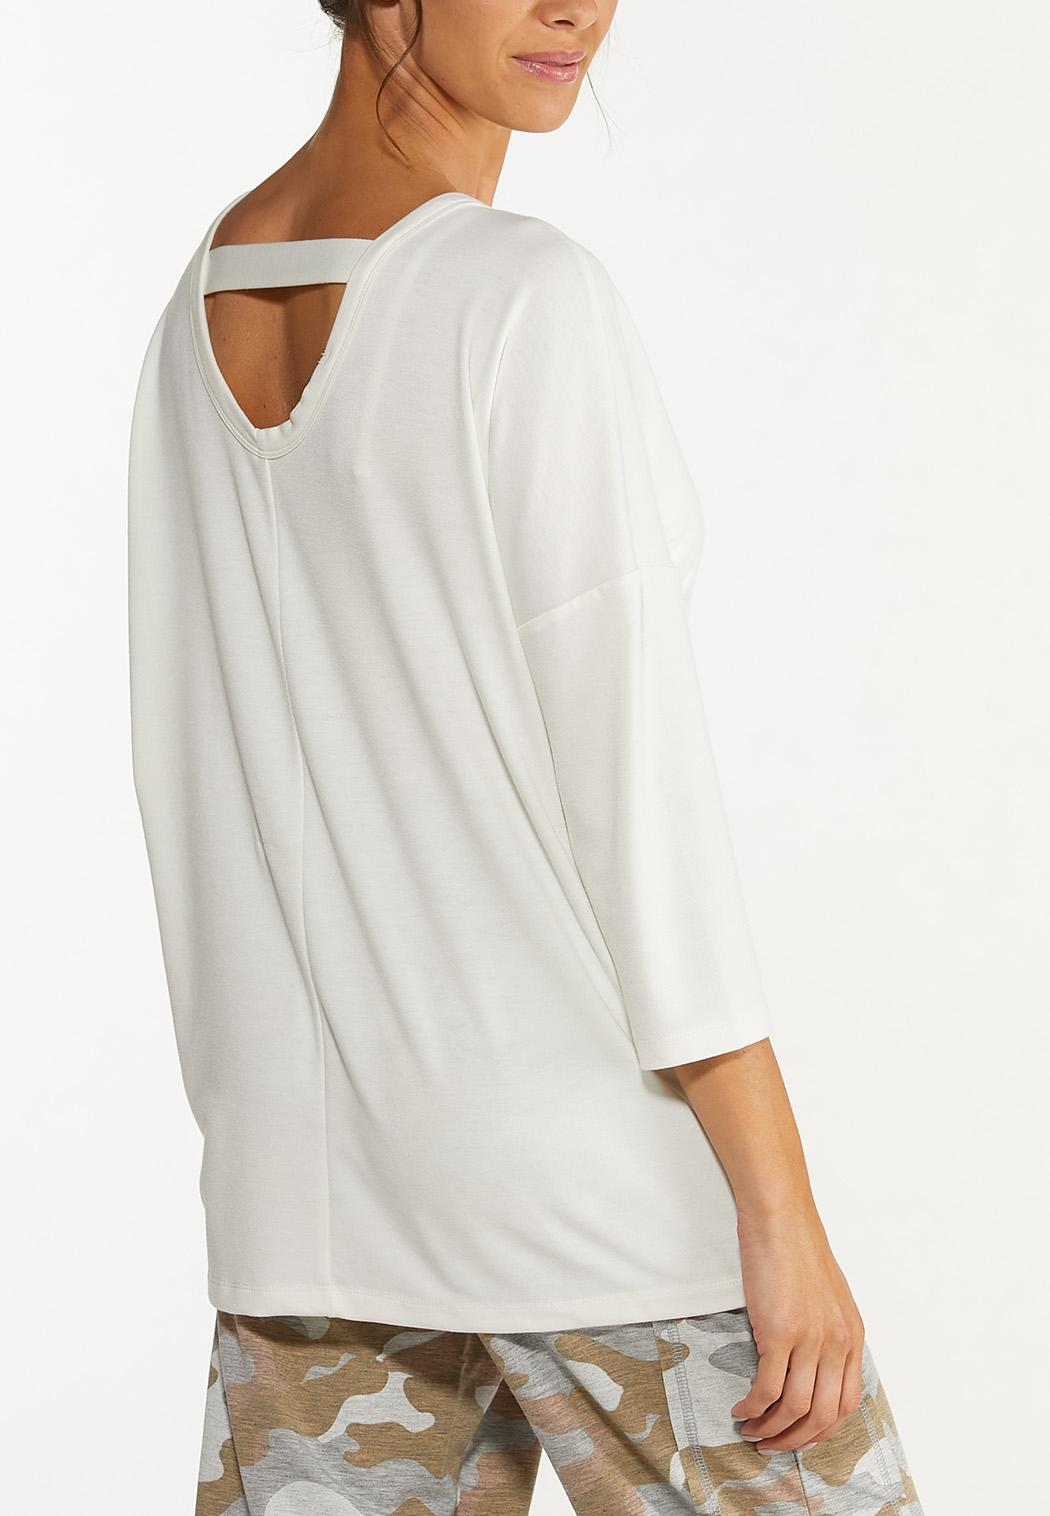 Cutout French Terry Top (Item #44615310)